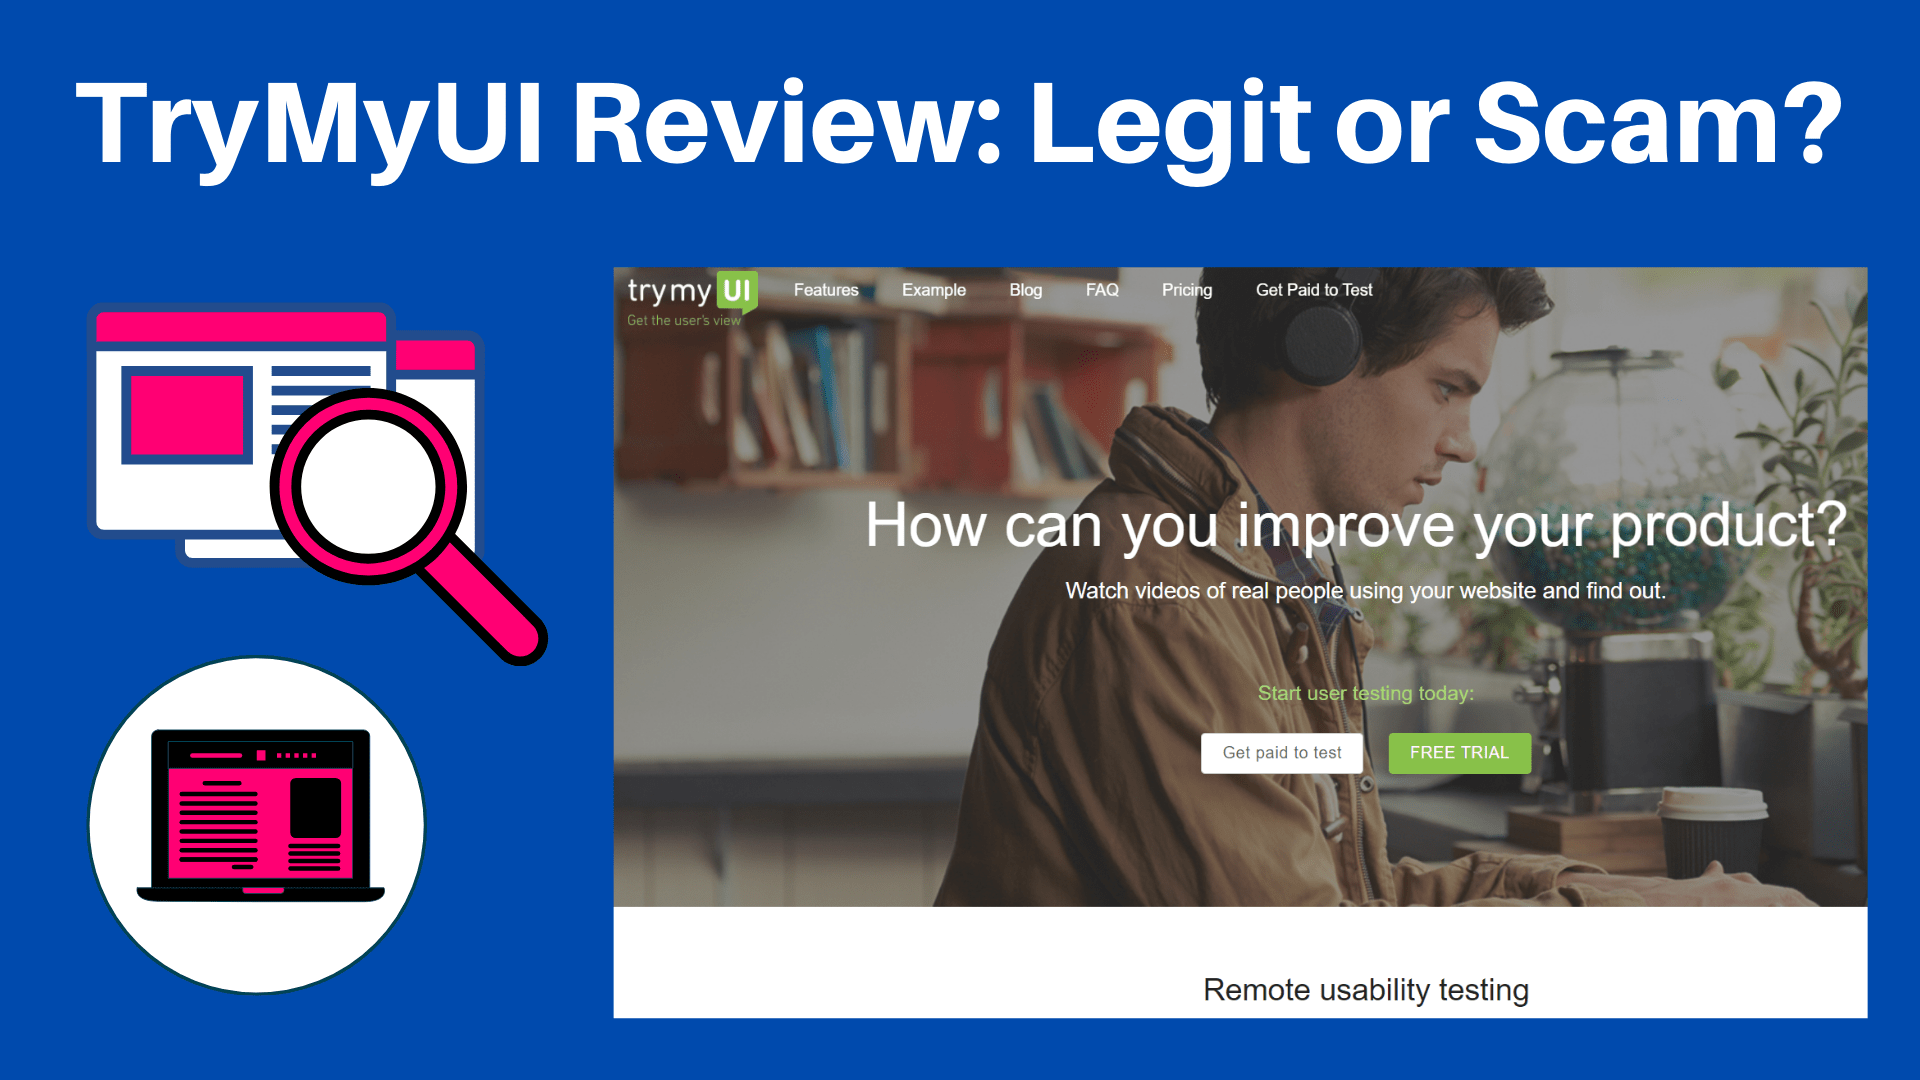 TryMyUI Review: Can you really earn testing websites?